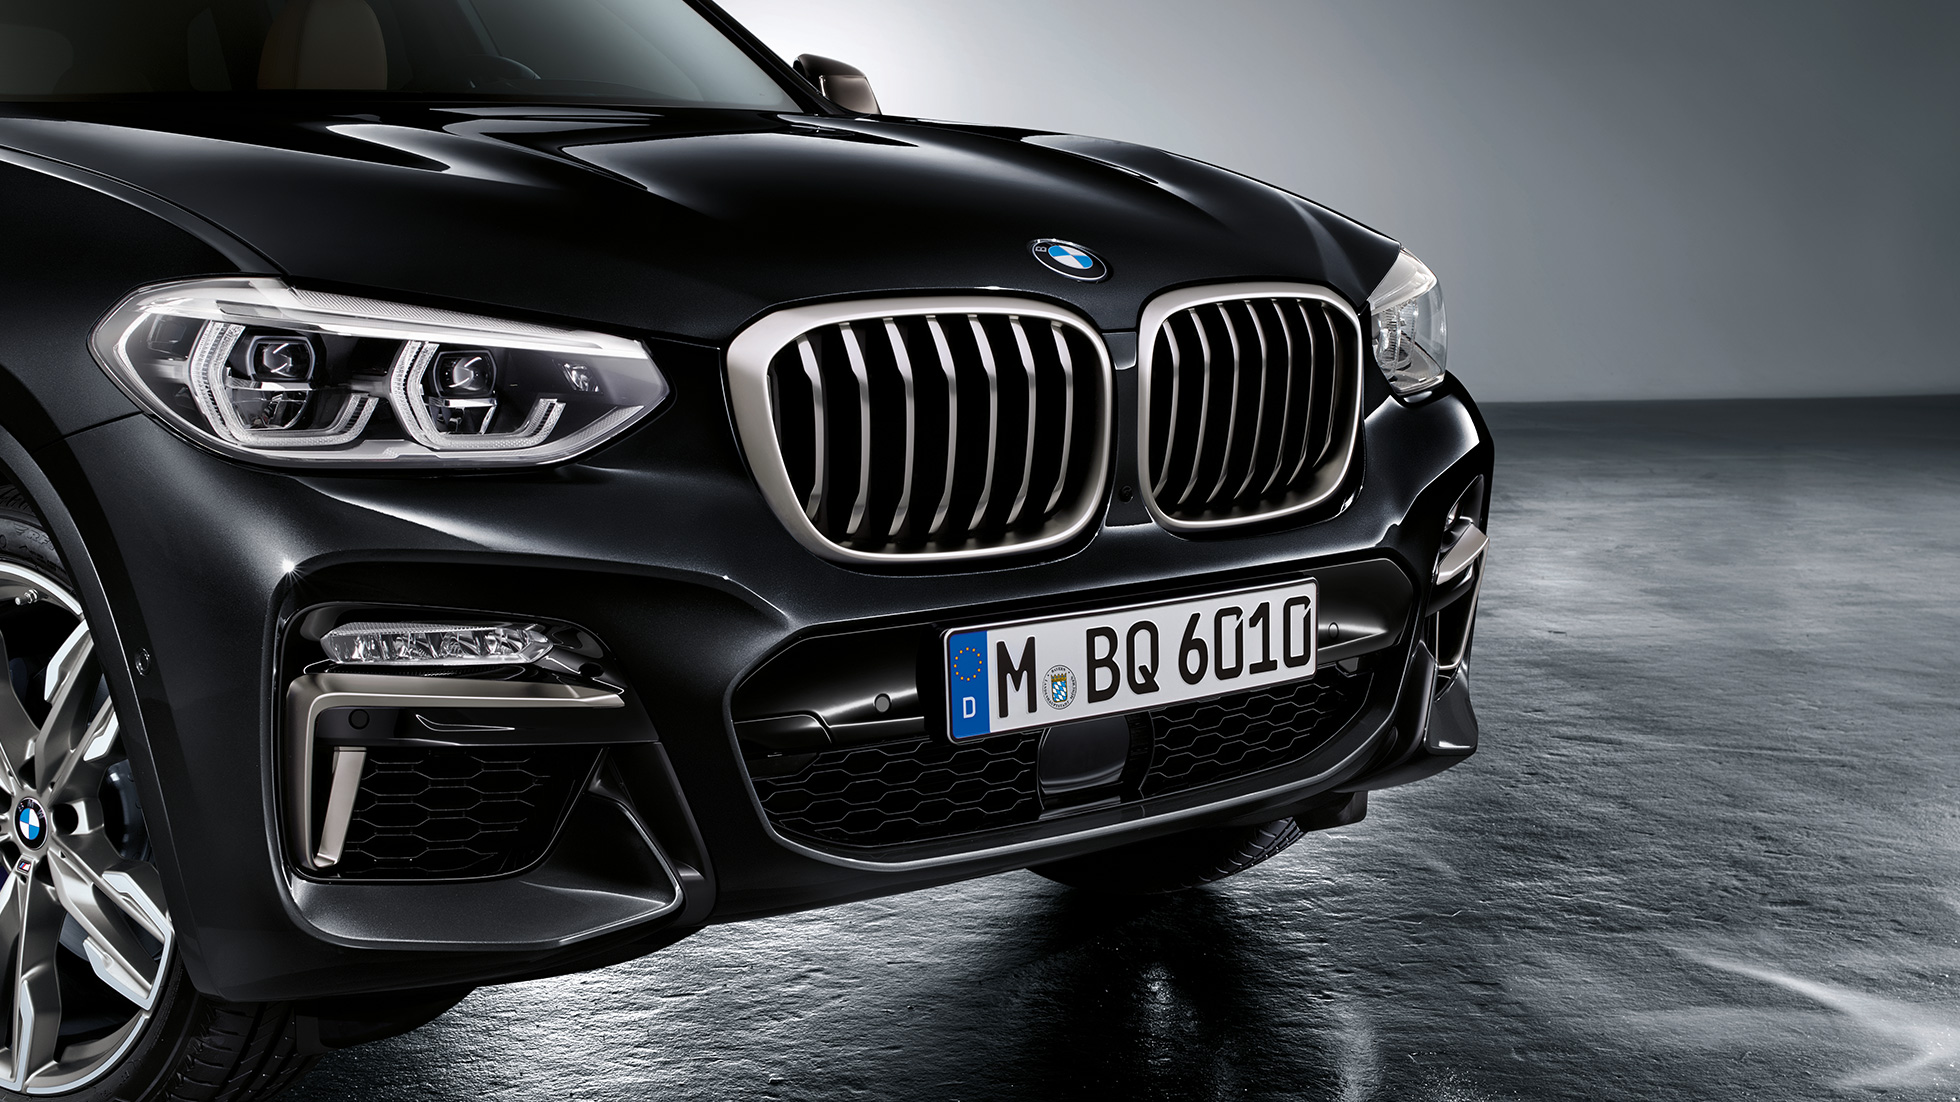 BMW X3 M40i and BMW X3 M40d in Black Sapphire metallic, exterior, front with design elements in Cerium Grey.